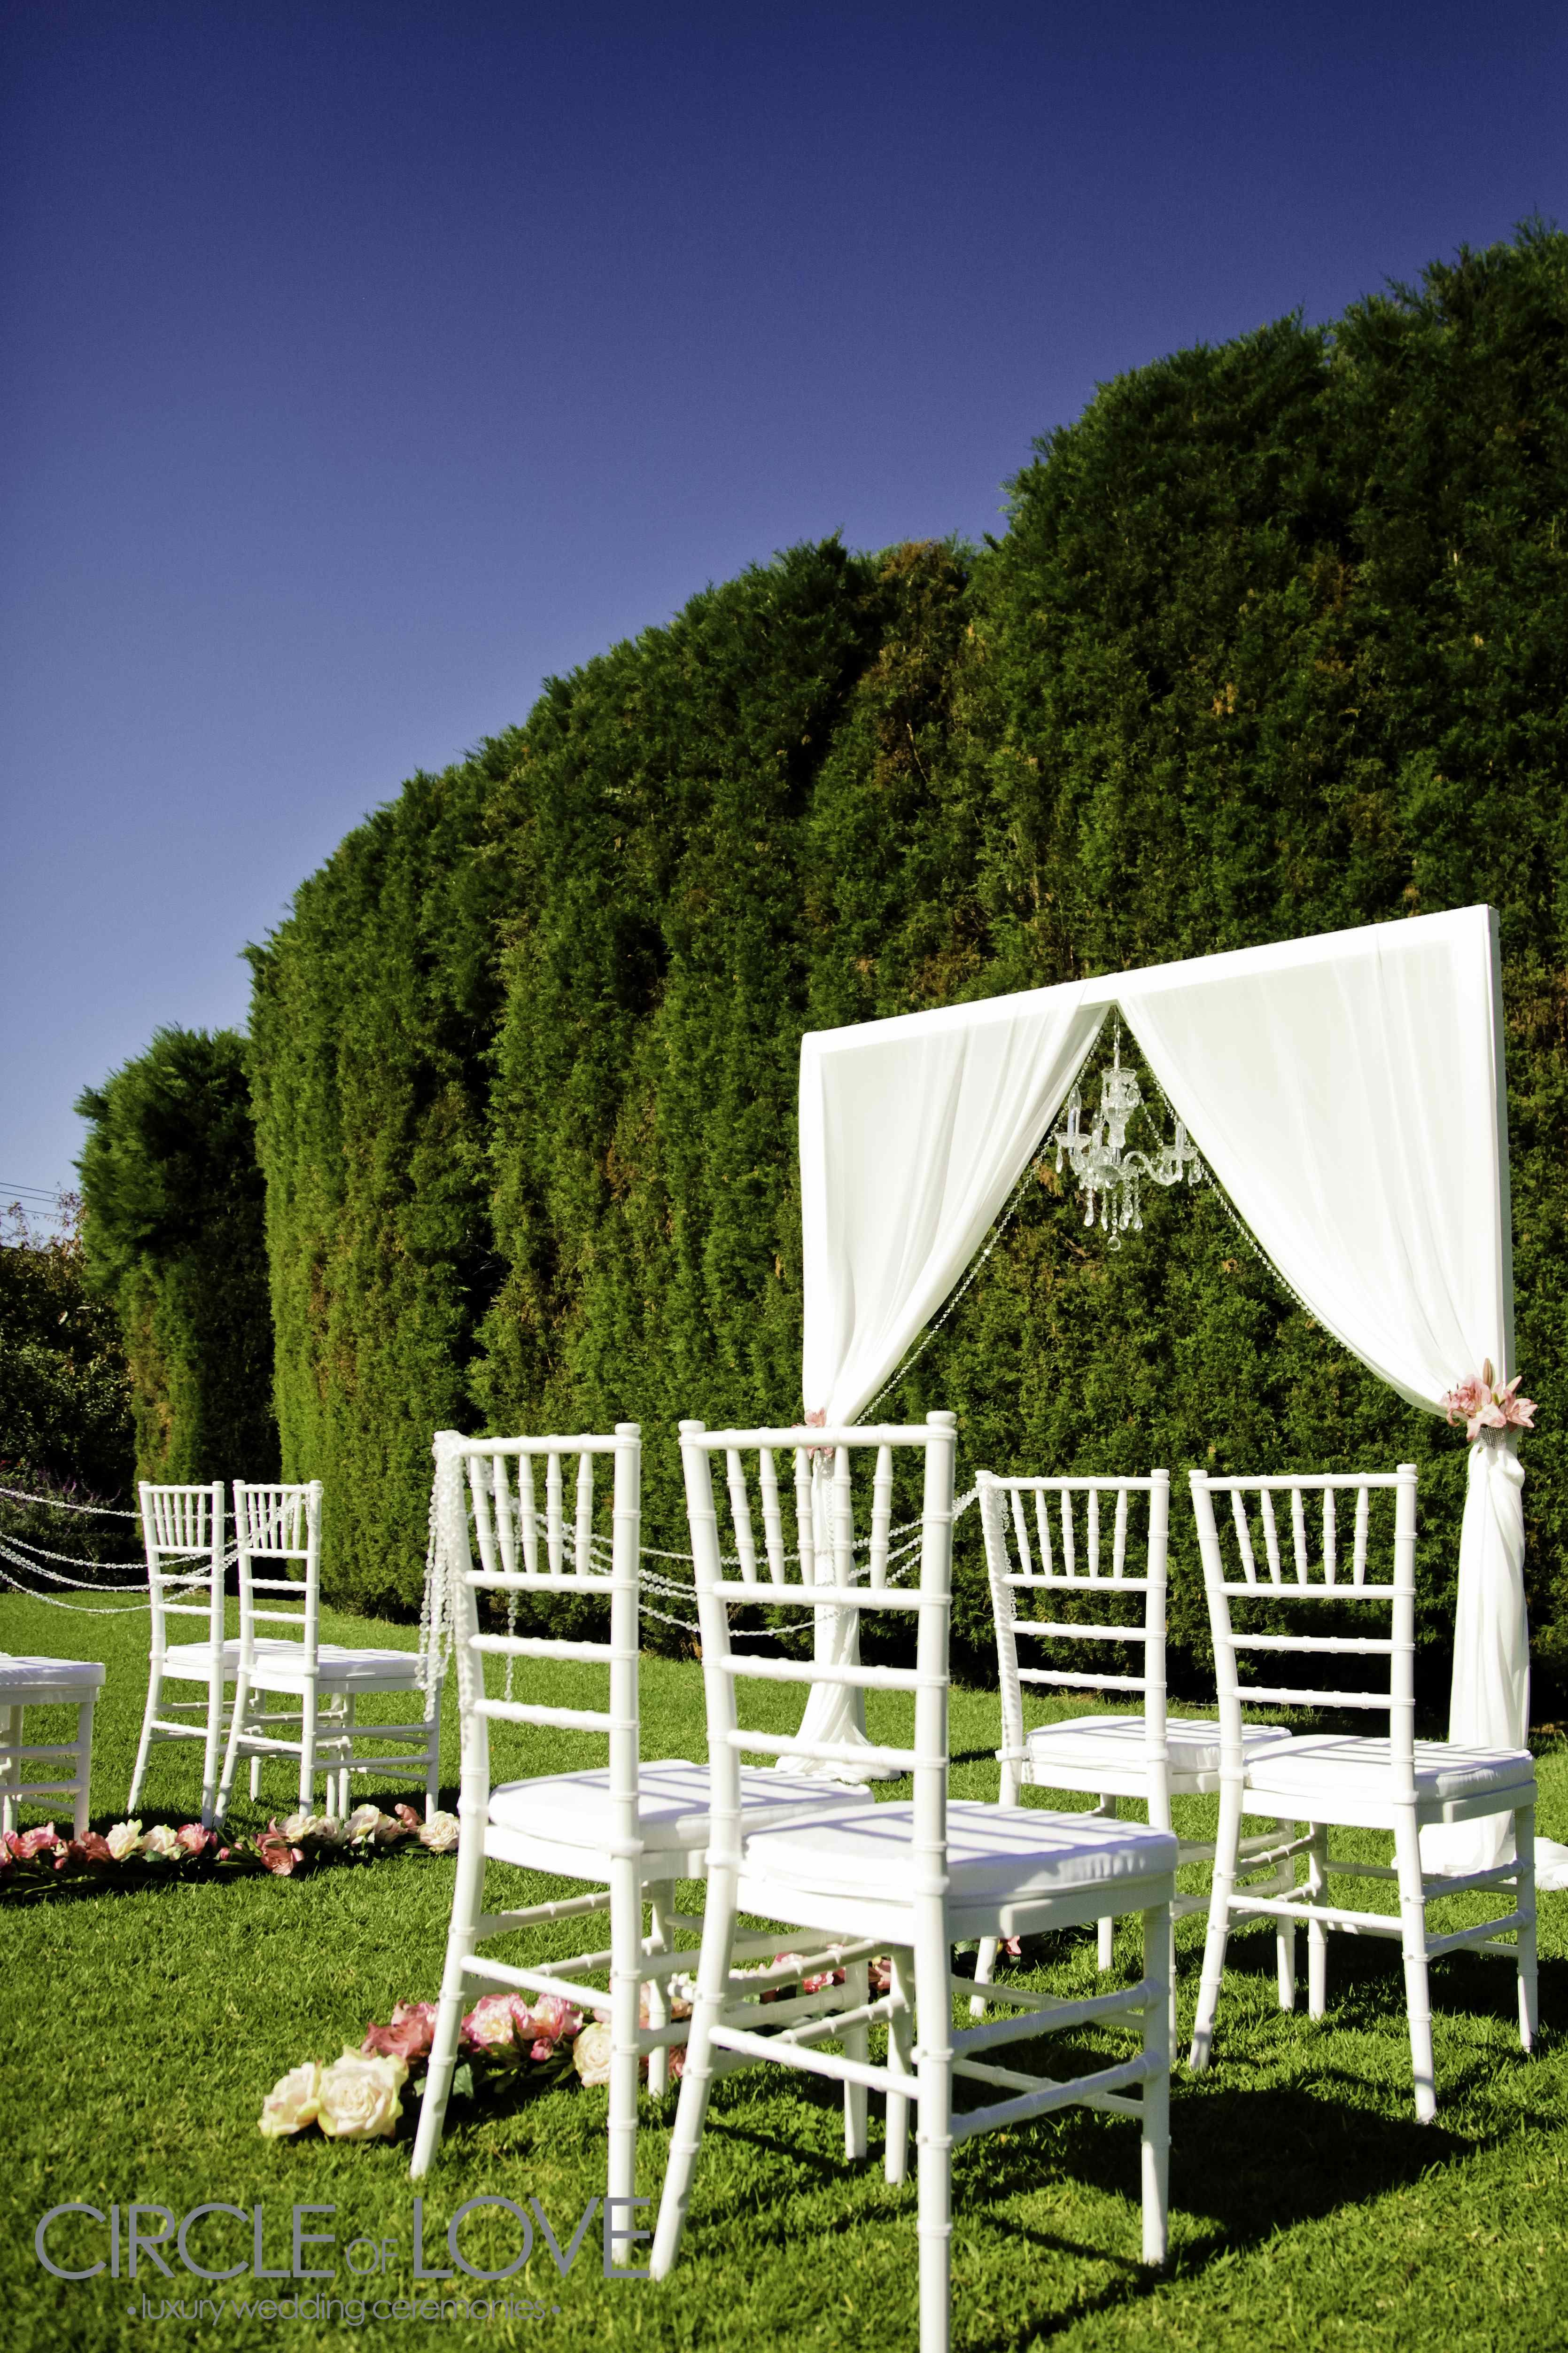 garden party wedding venues melbourne%0A King Parrot Cottages  u     Event Centre  Pennyroyal  Victoria   Wedding Venues  Victoria   Find more Victoria wedding venues like this at www ourweddin u